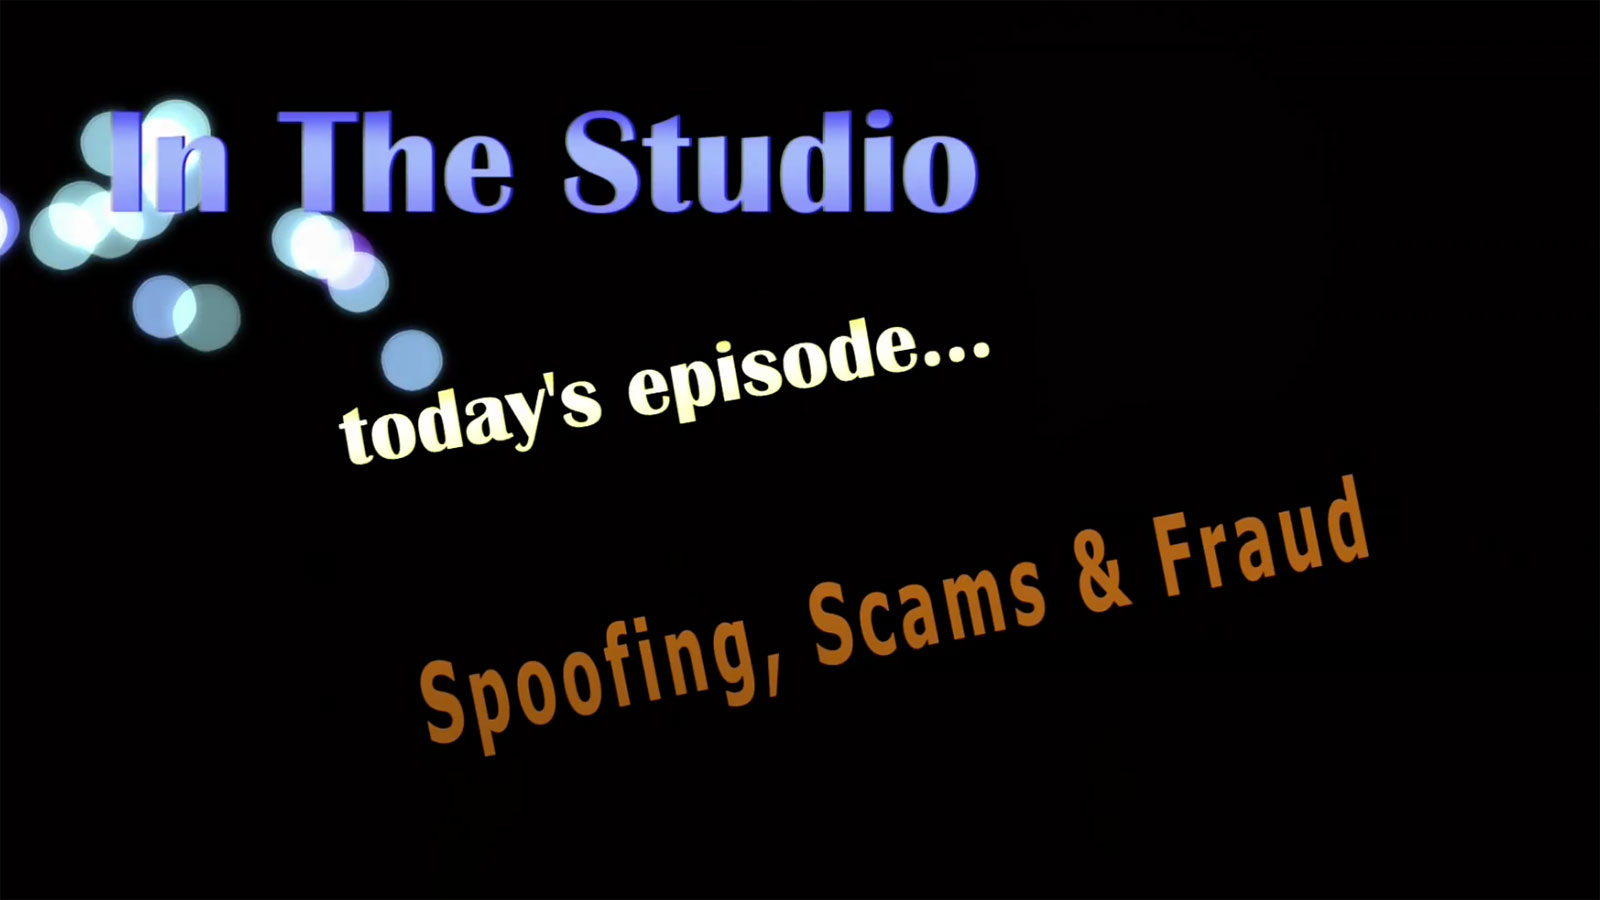 In the Studio: Spoofing, Scams, and Fraud